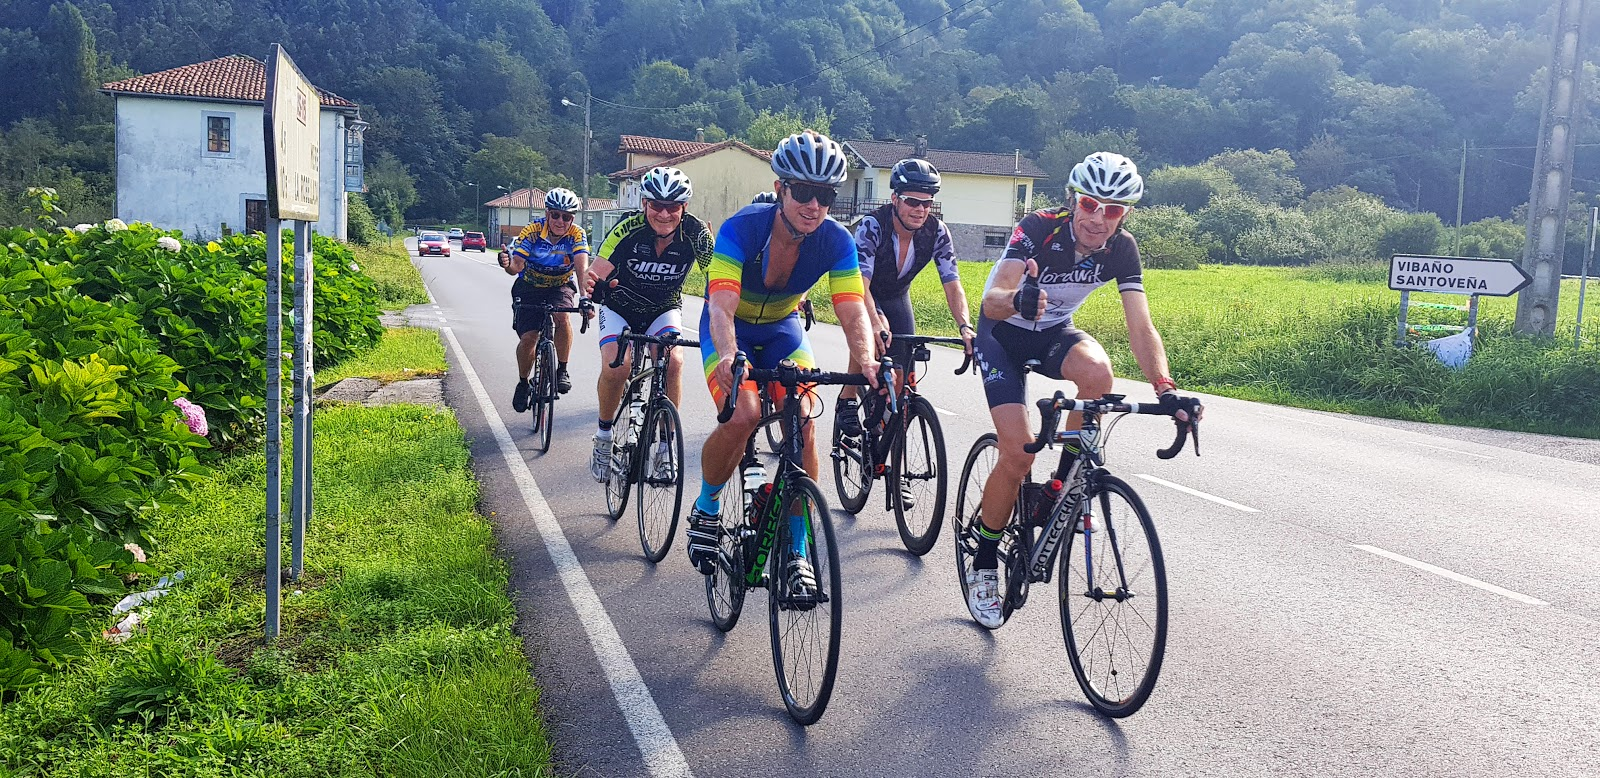 60f122e52 Biking Spain s Basque Country and Cycling its Climbs